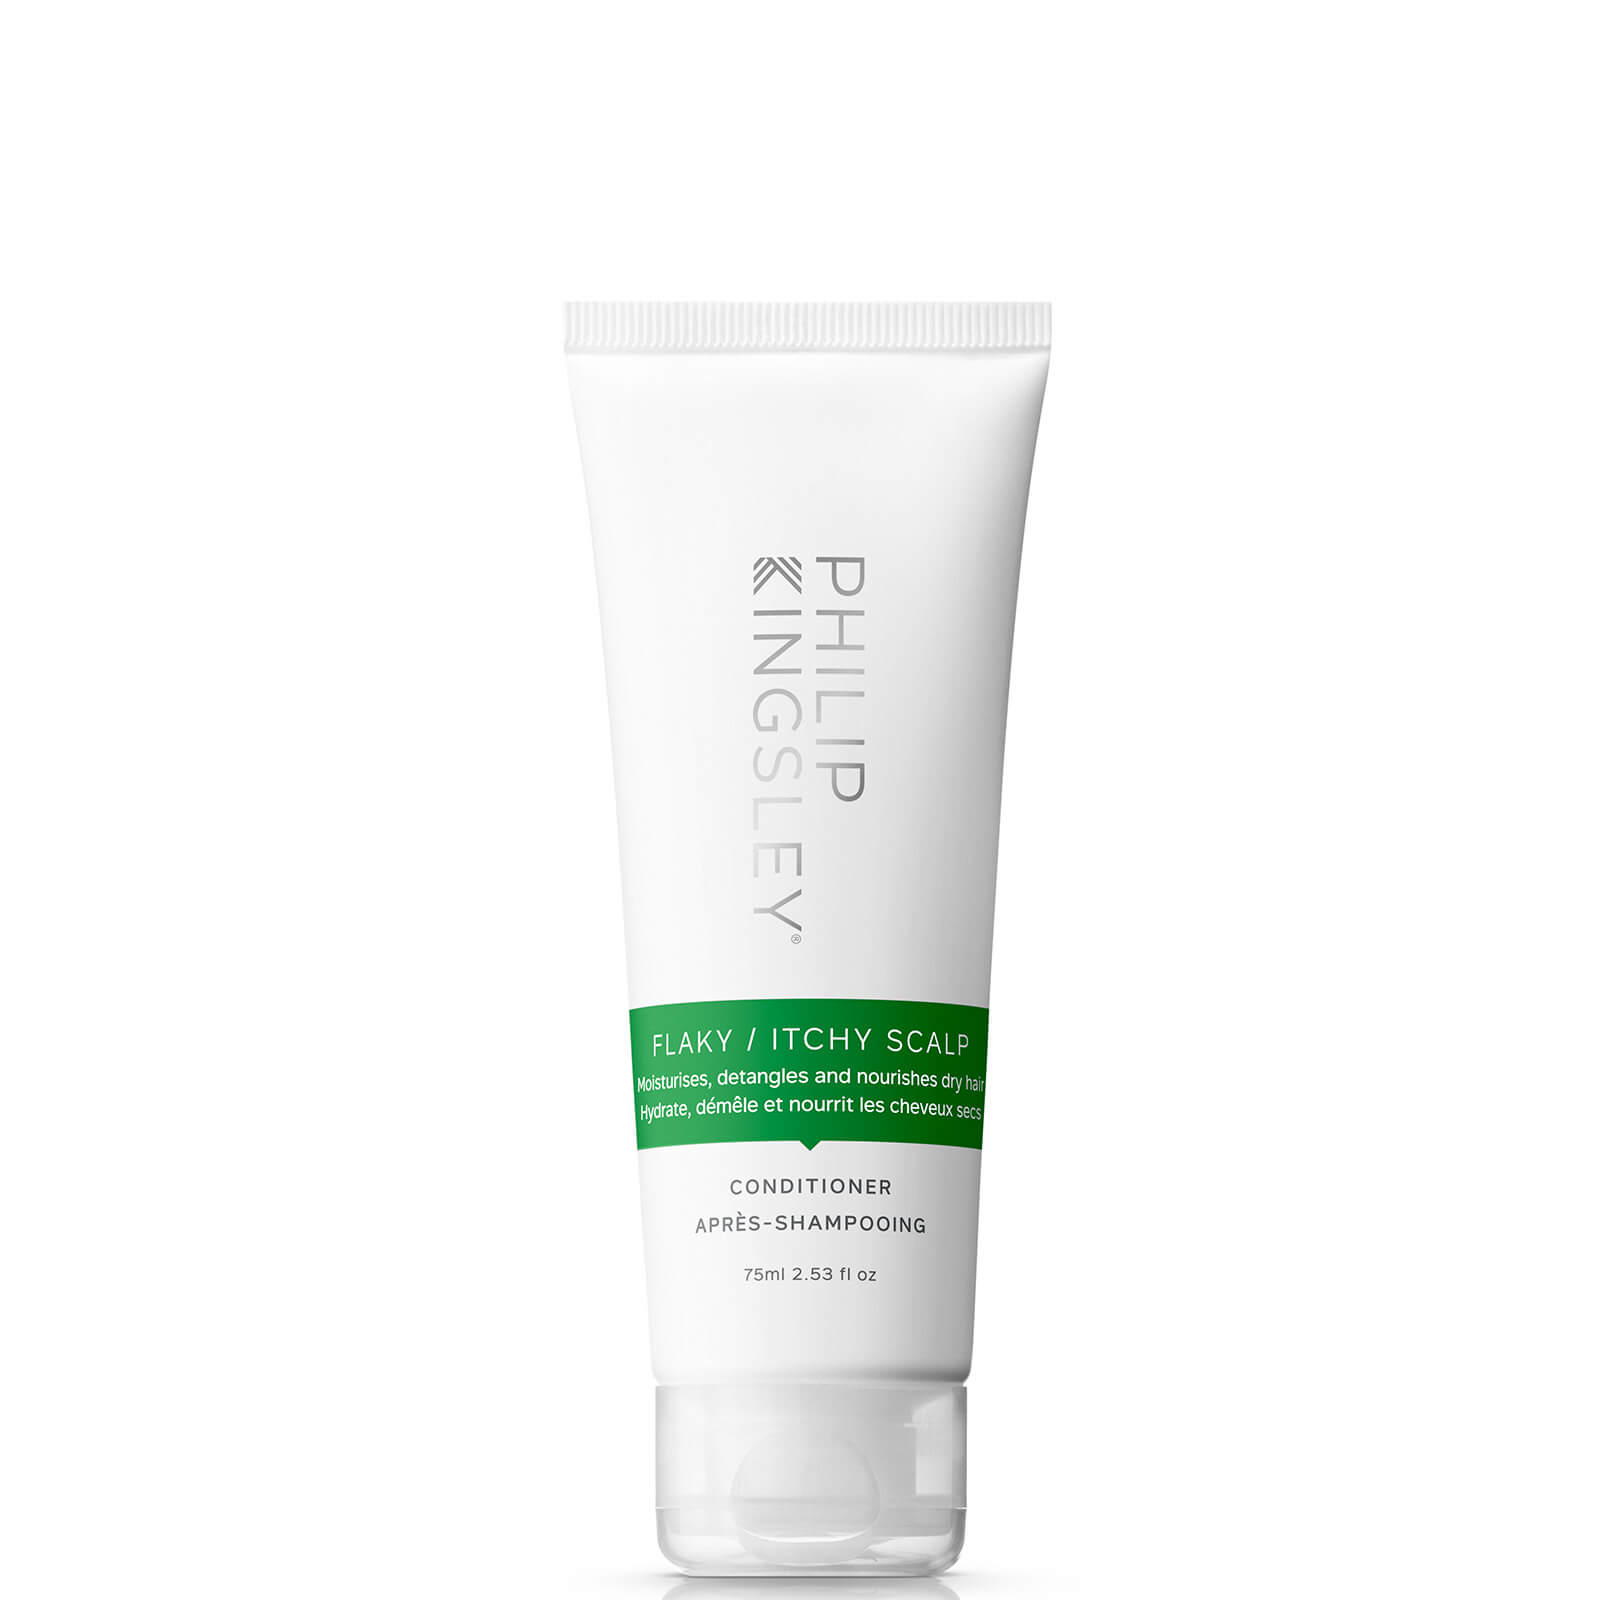 Philip Kingsley Flaky/Itchy Scalp Conditioner 75ml